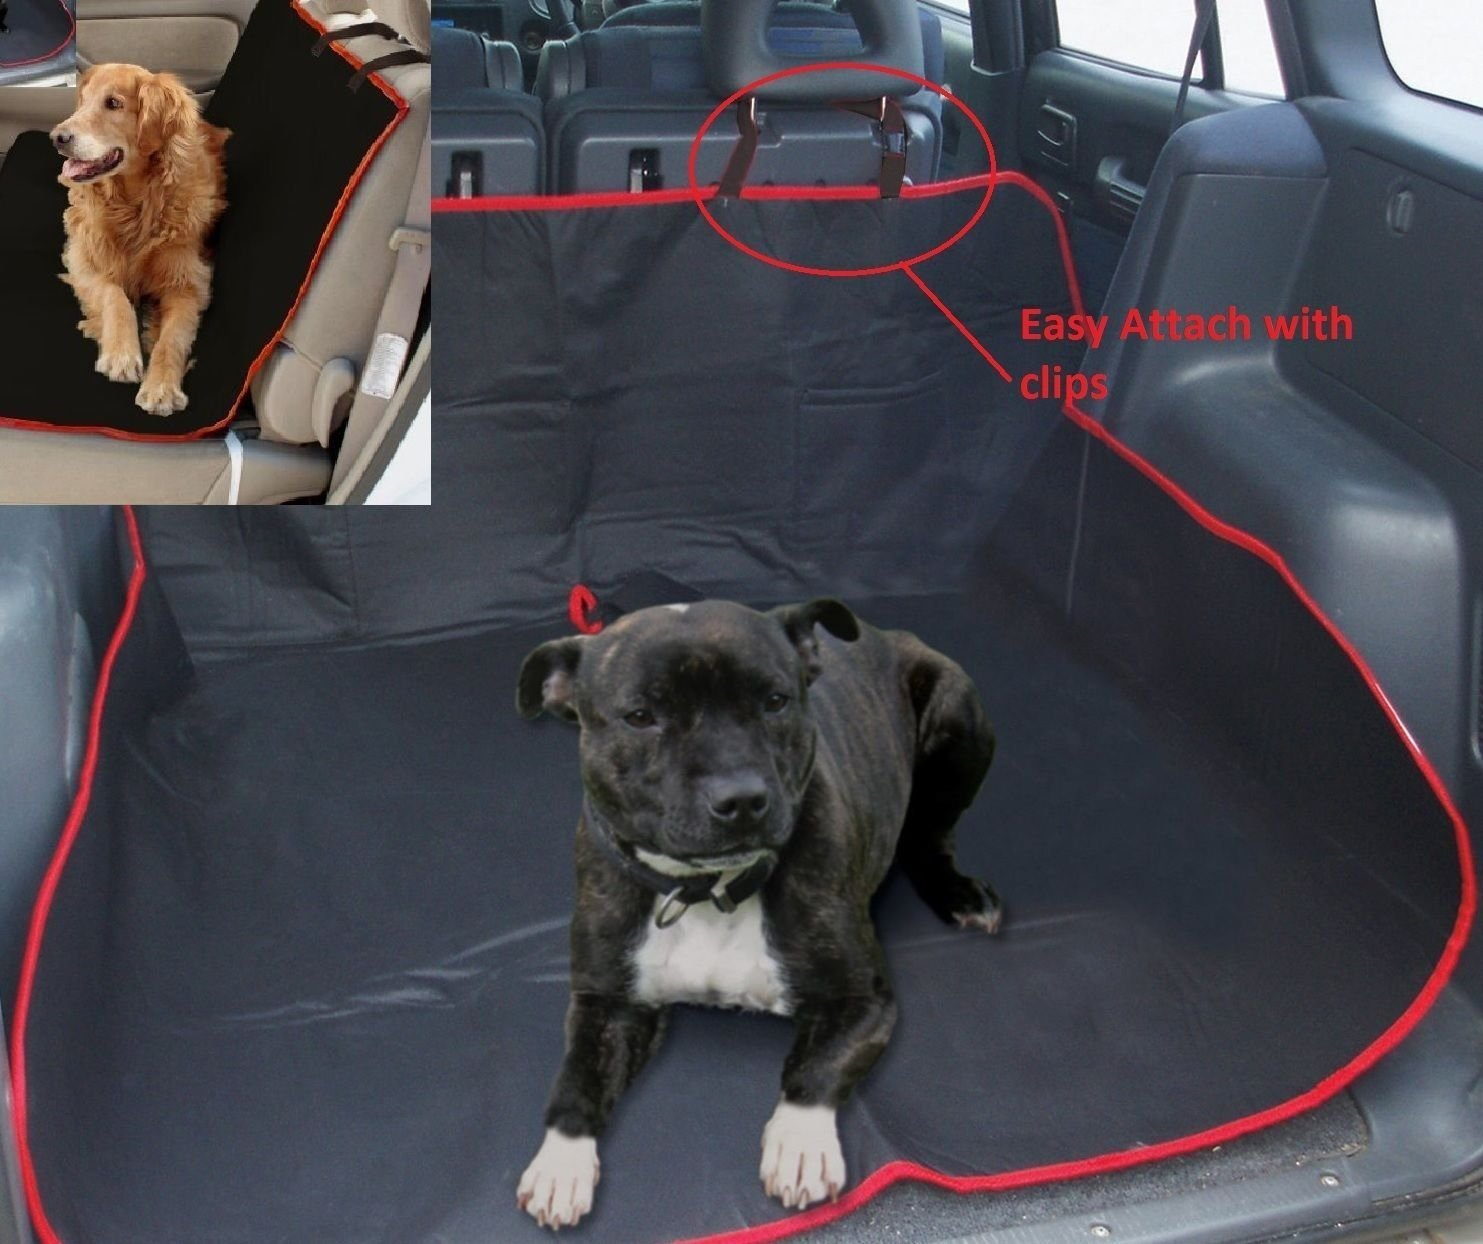 Generic DYHP-A10-CODE-2680-CLASS-1-- Pets Mat Universal Waterproof Dog Pets Car Boot Liner ctive W Rear Seat ear S Cover Predective ot Line-NV_1001002680-HP10-UK_436